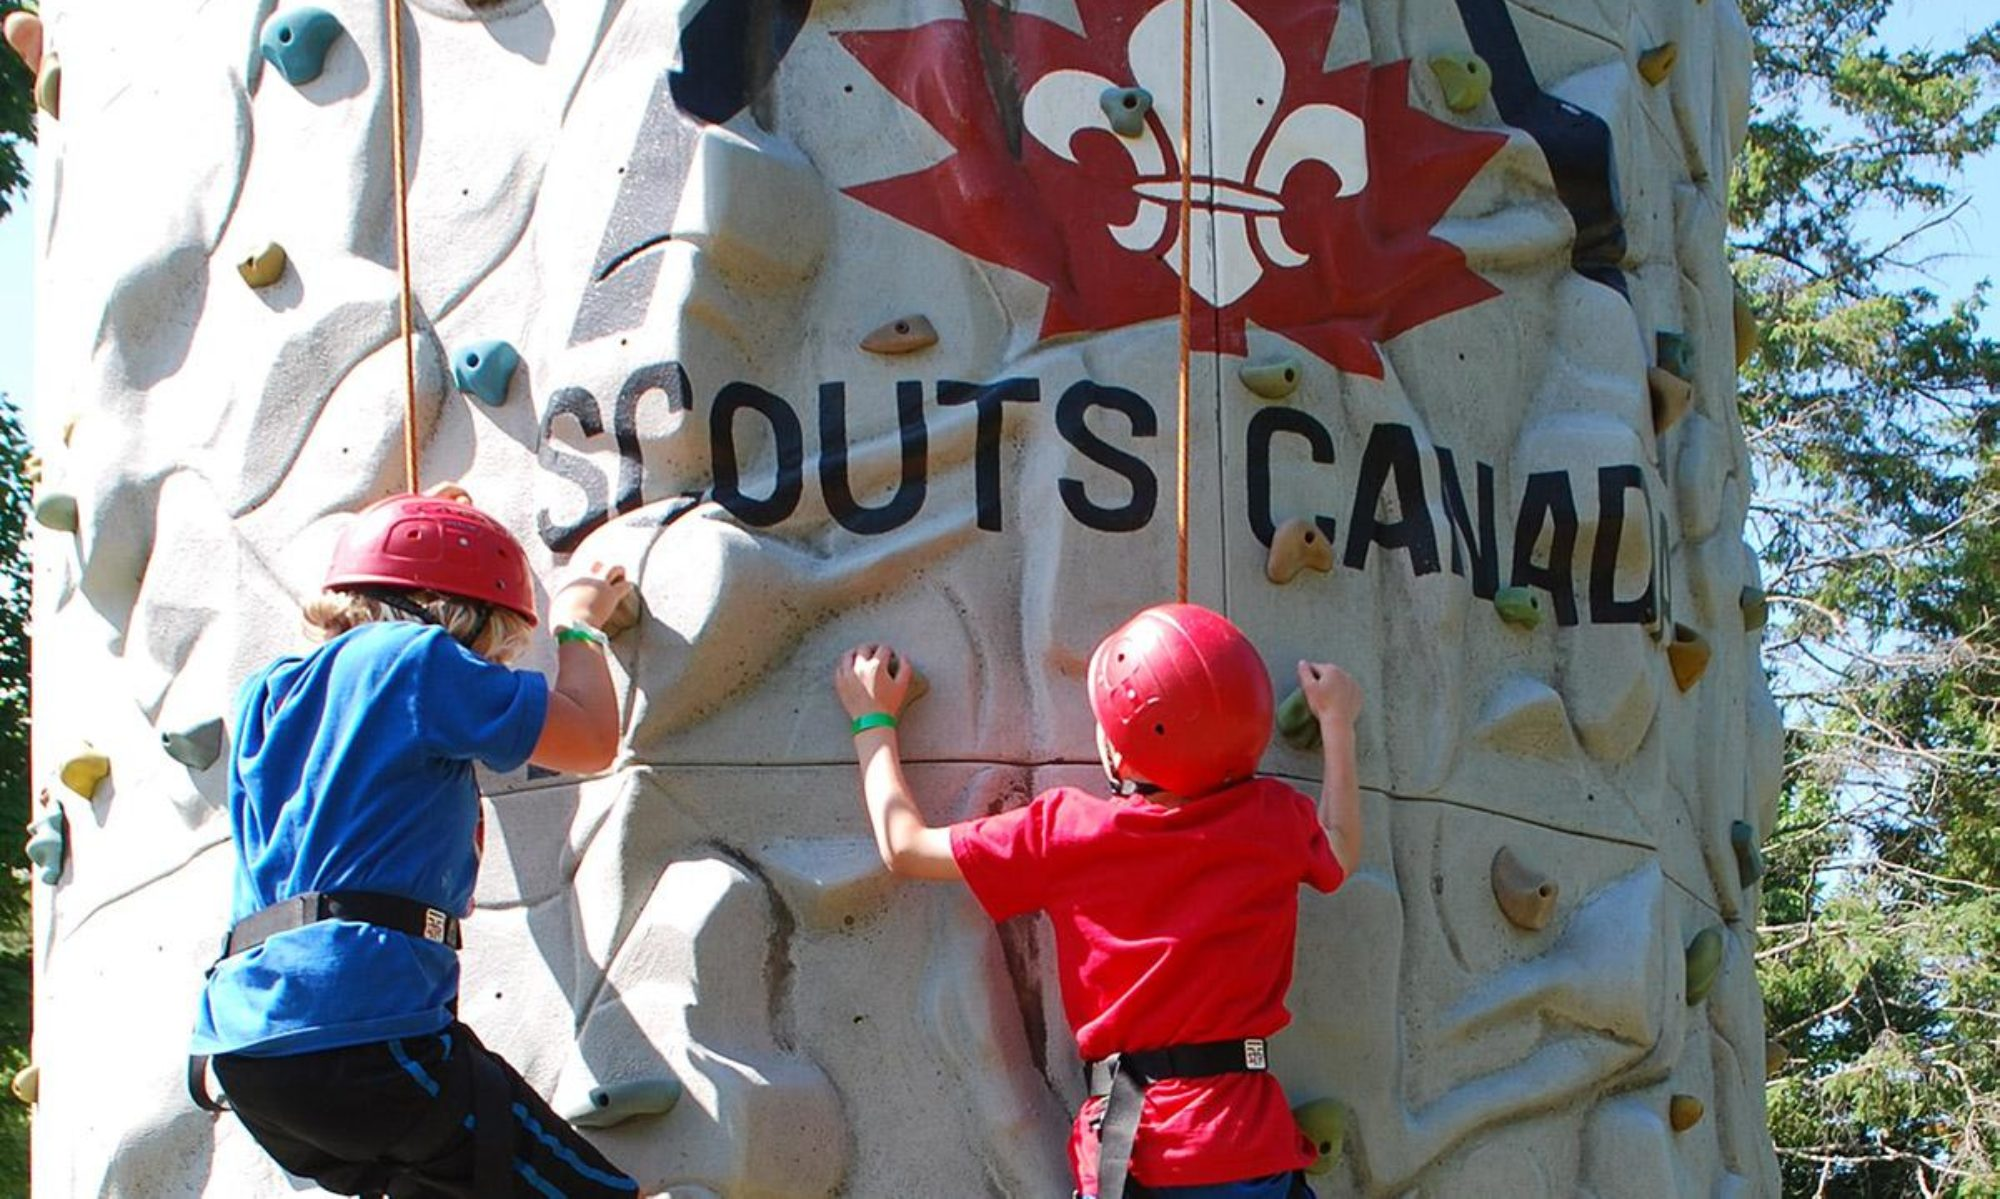 Scouts Canada Quebec Council